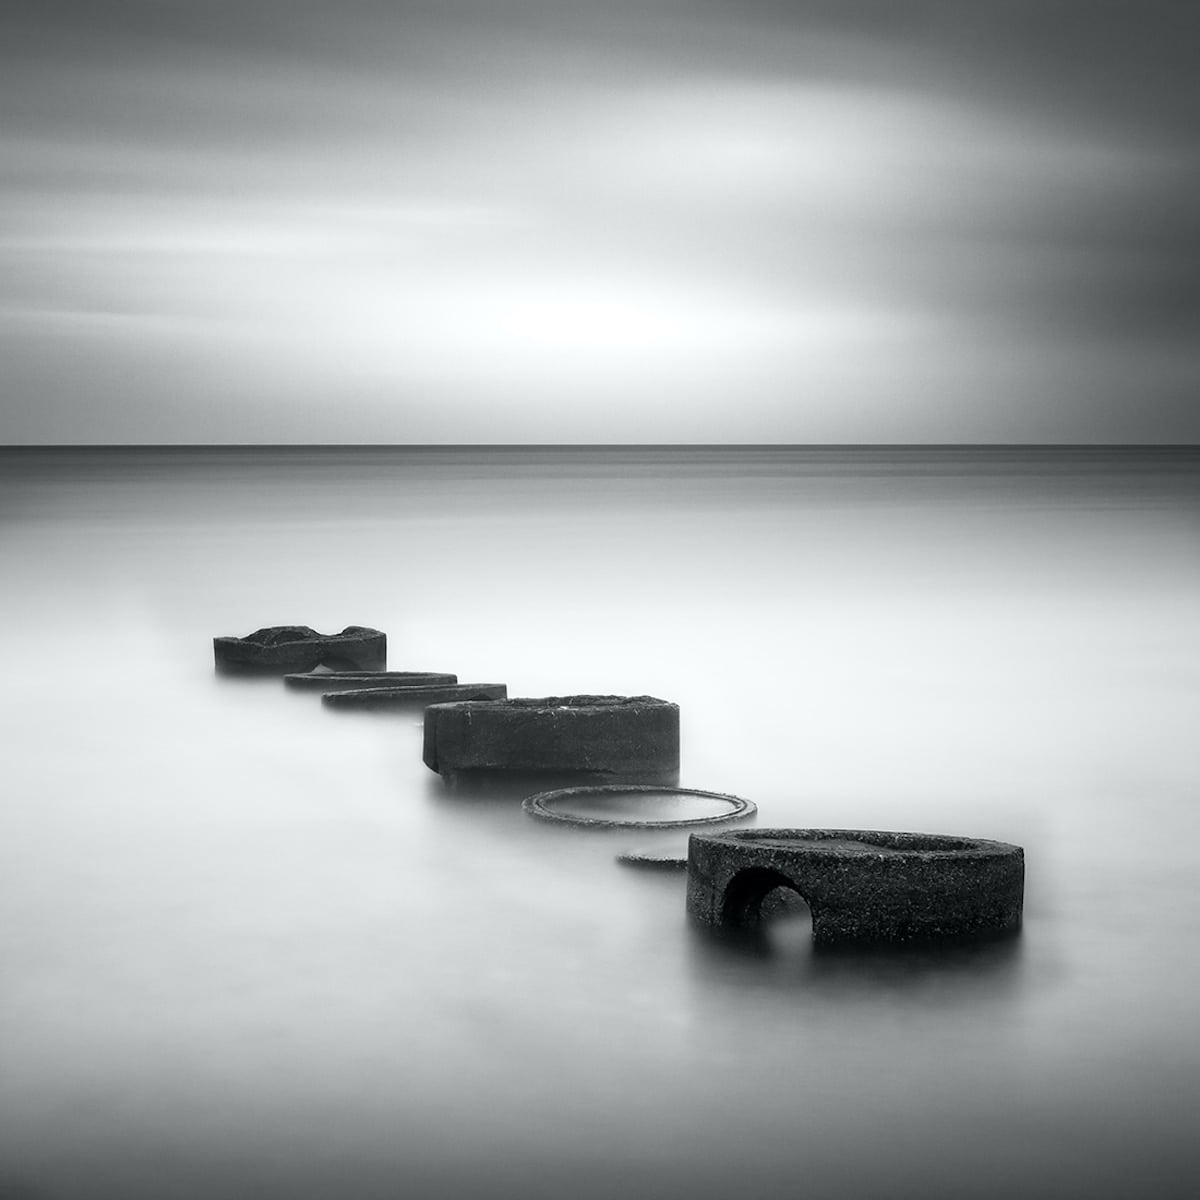 Circles in the Water by Michael Bille